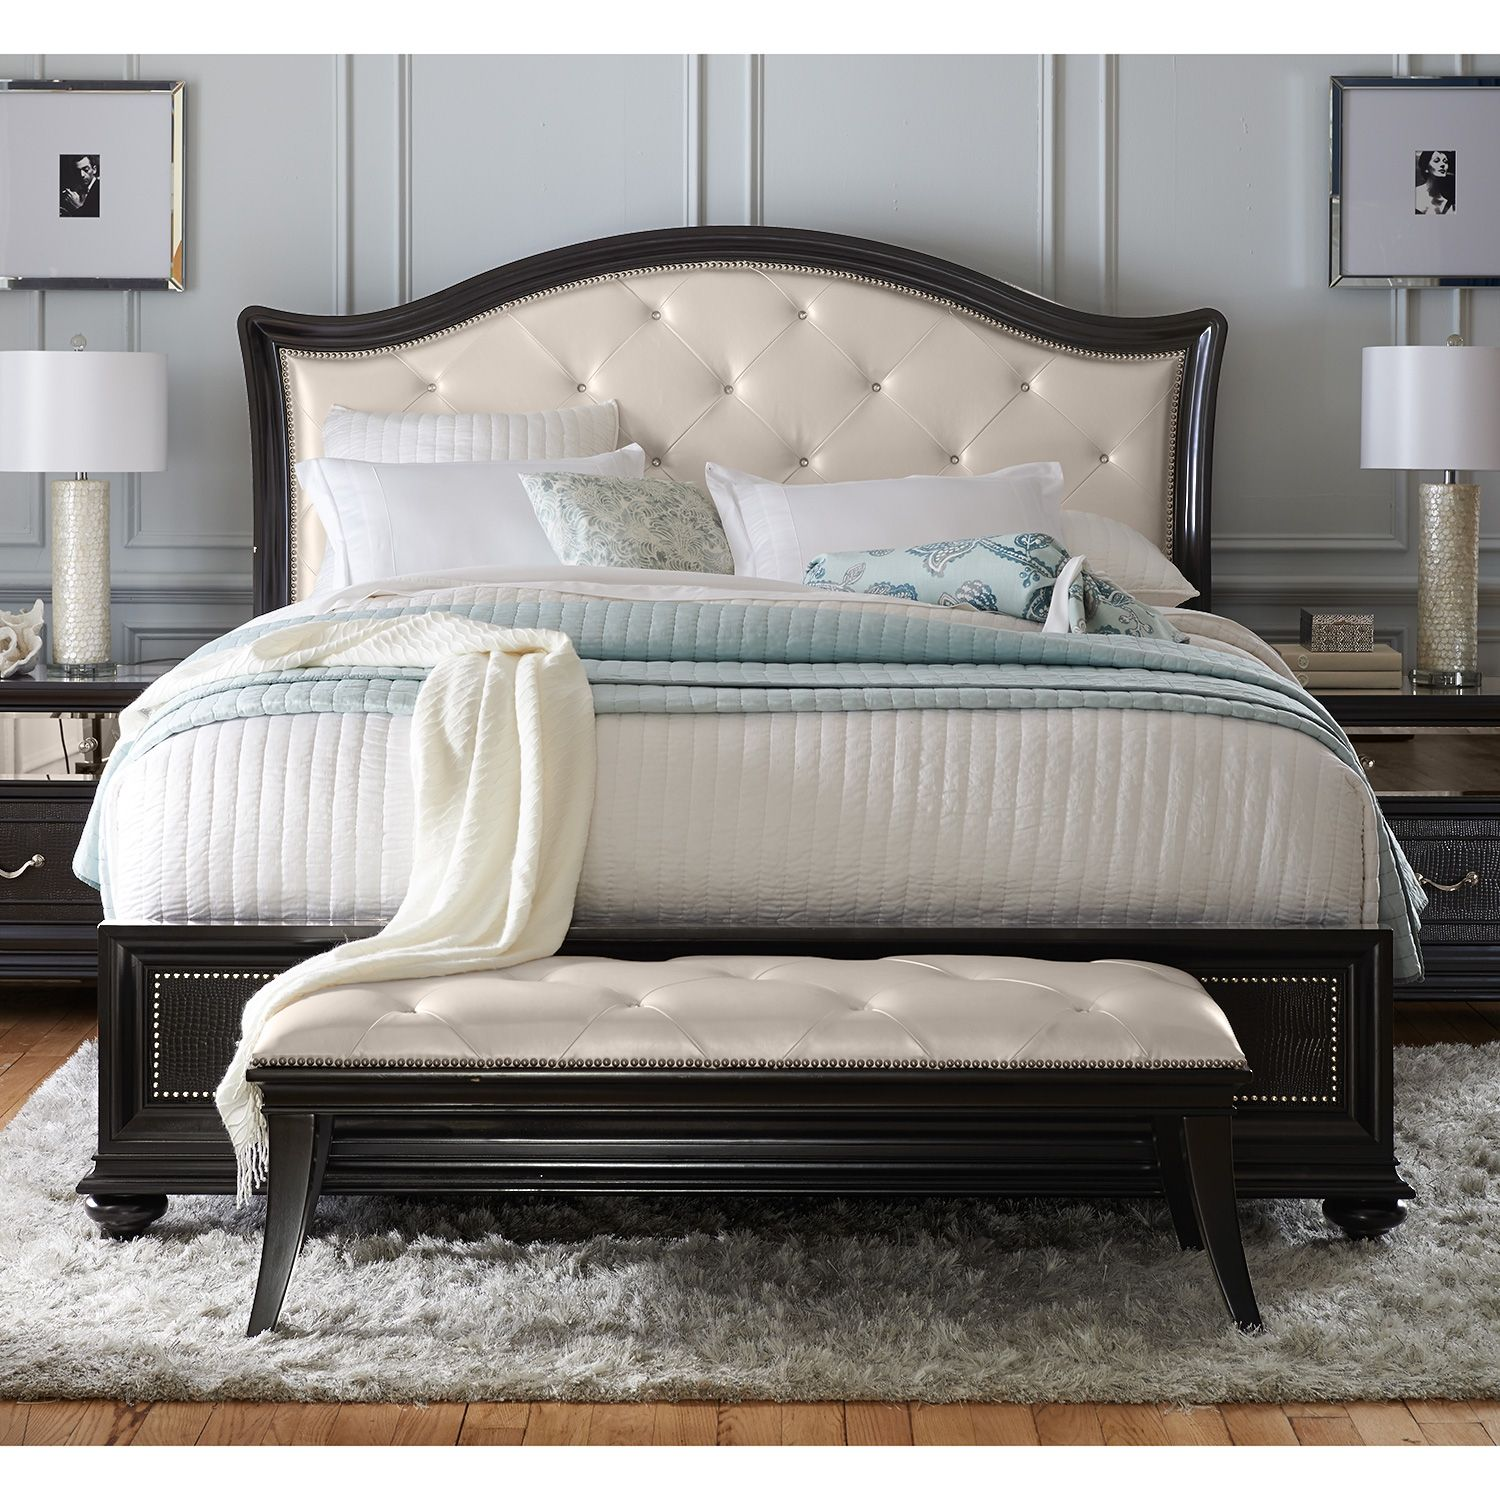 I Want This From American Signature Furniture Marilyn Bedroom King Bed